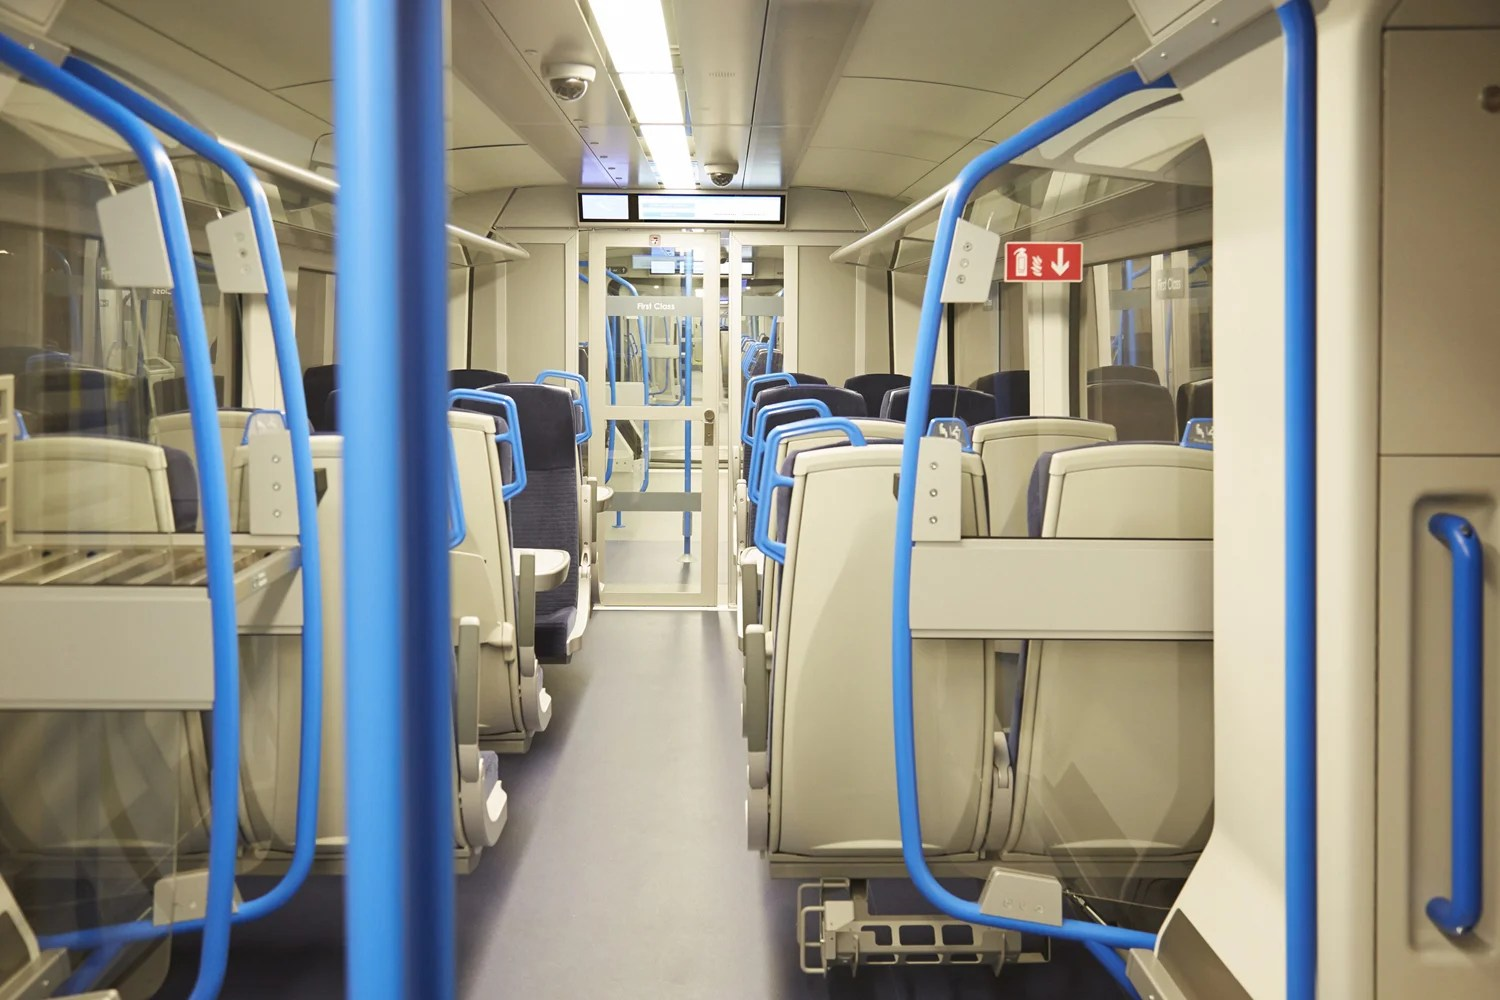 New hitech Thameslink trains unveiled with fewer seats